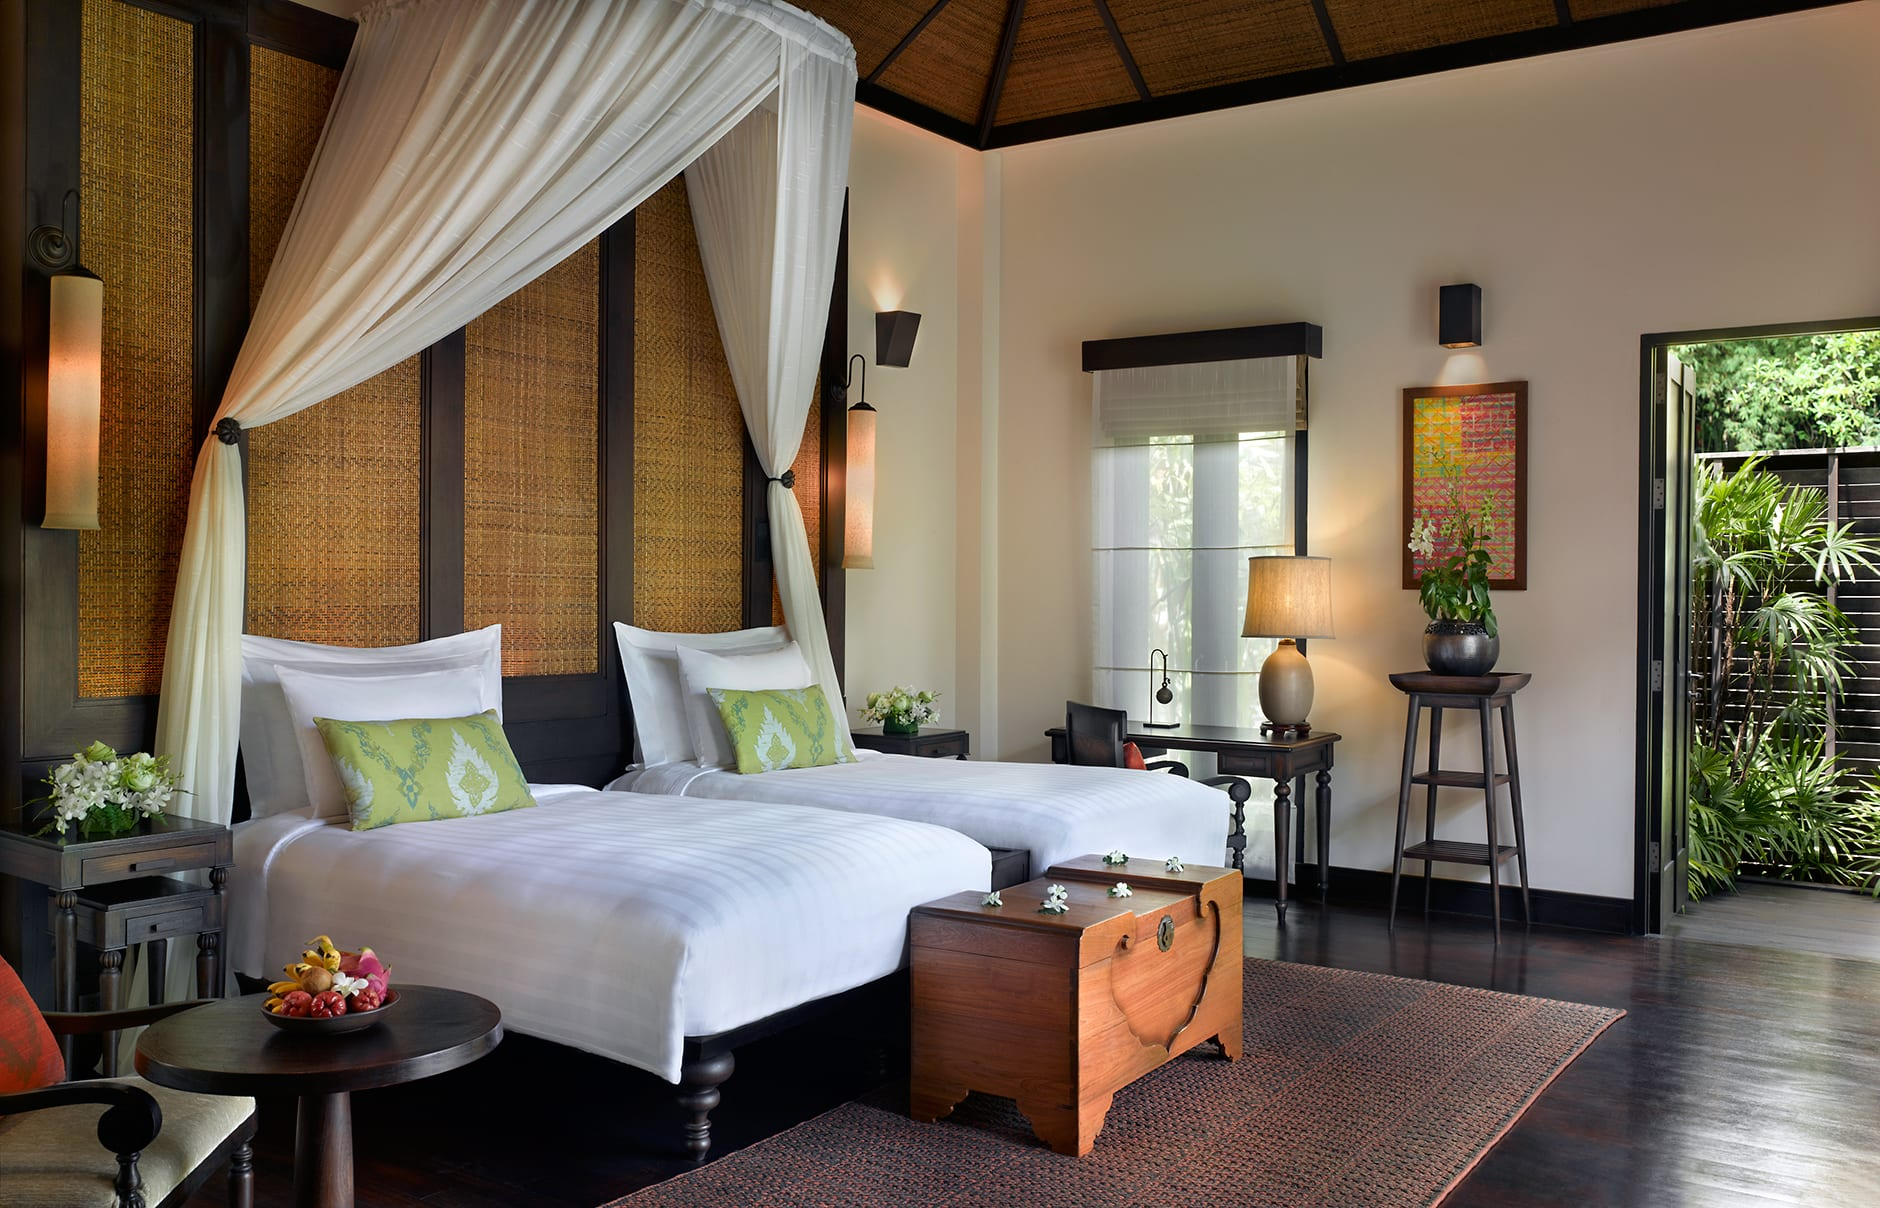 Two Bedroom Family Pool Villa. Anantara Phuket Villas, Thailand. © Anantara Hotels, Resorts & Spa